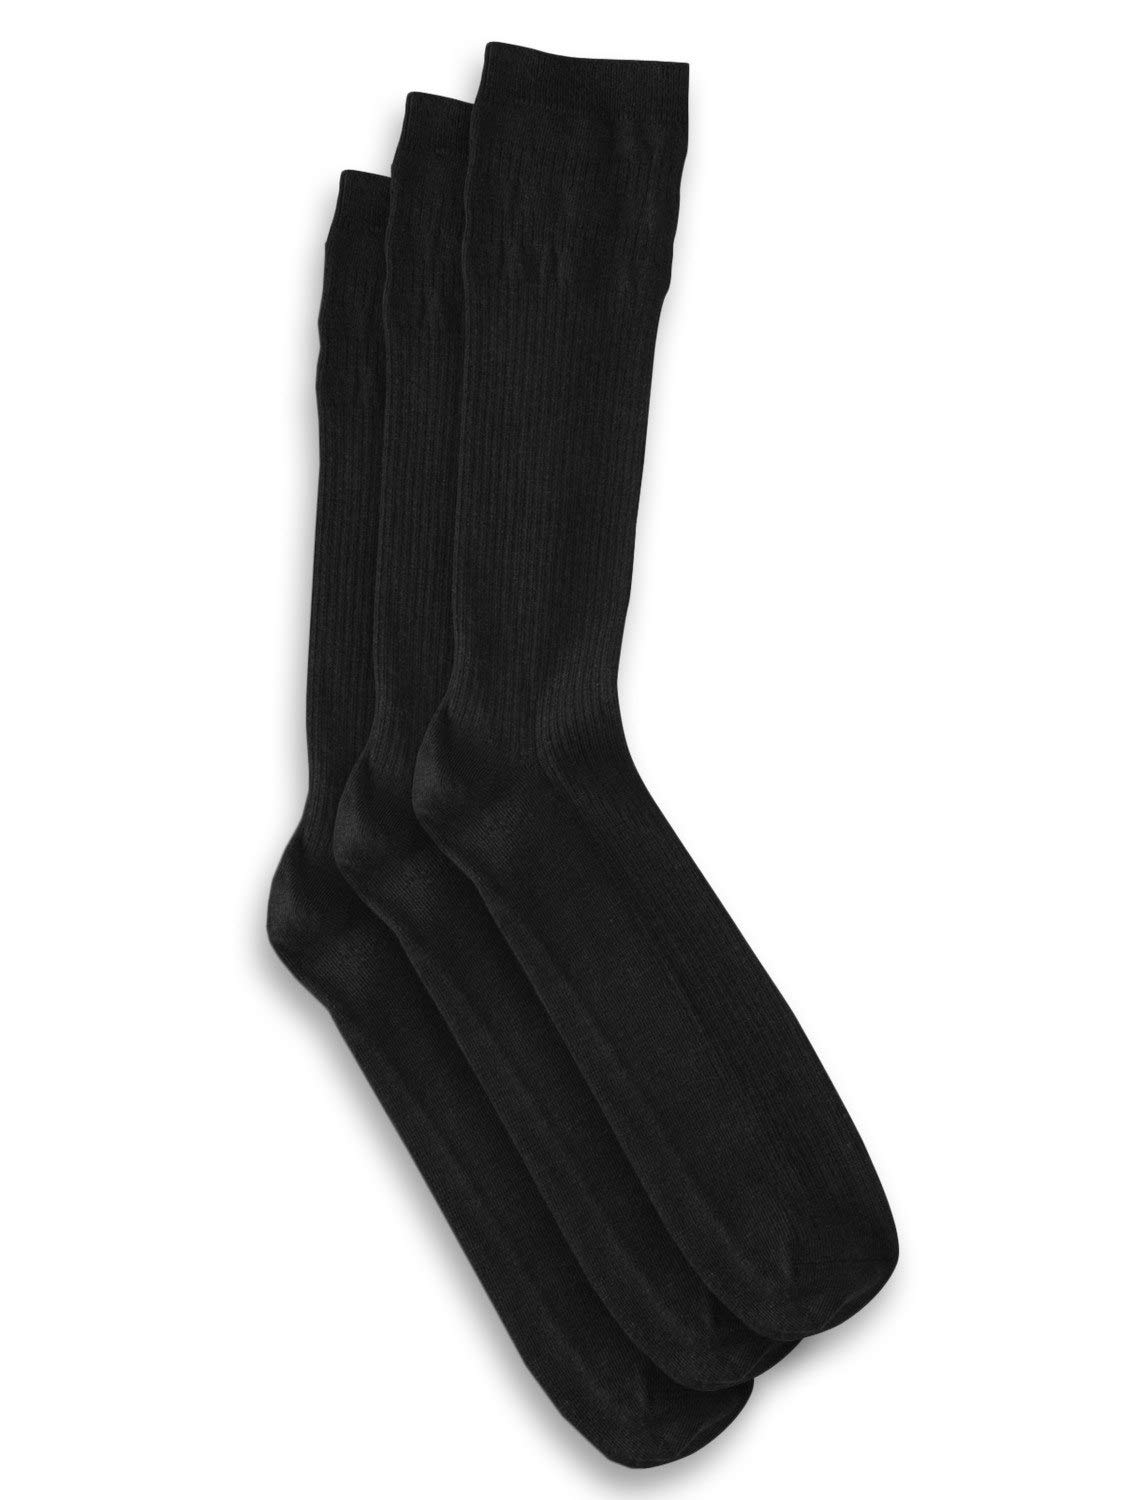 Harbor Bay by DXL Big and Tall Non-Elastic Crew Socks 3-Pack (13-16, Black)